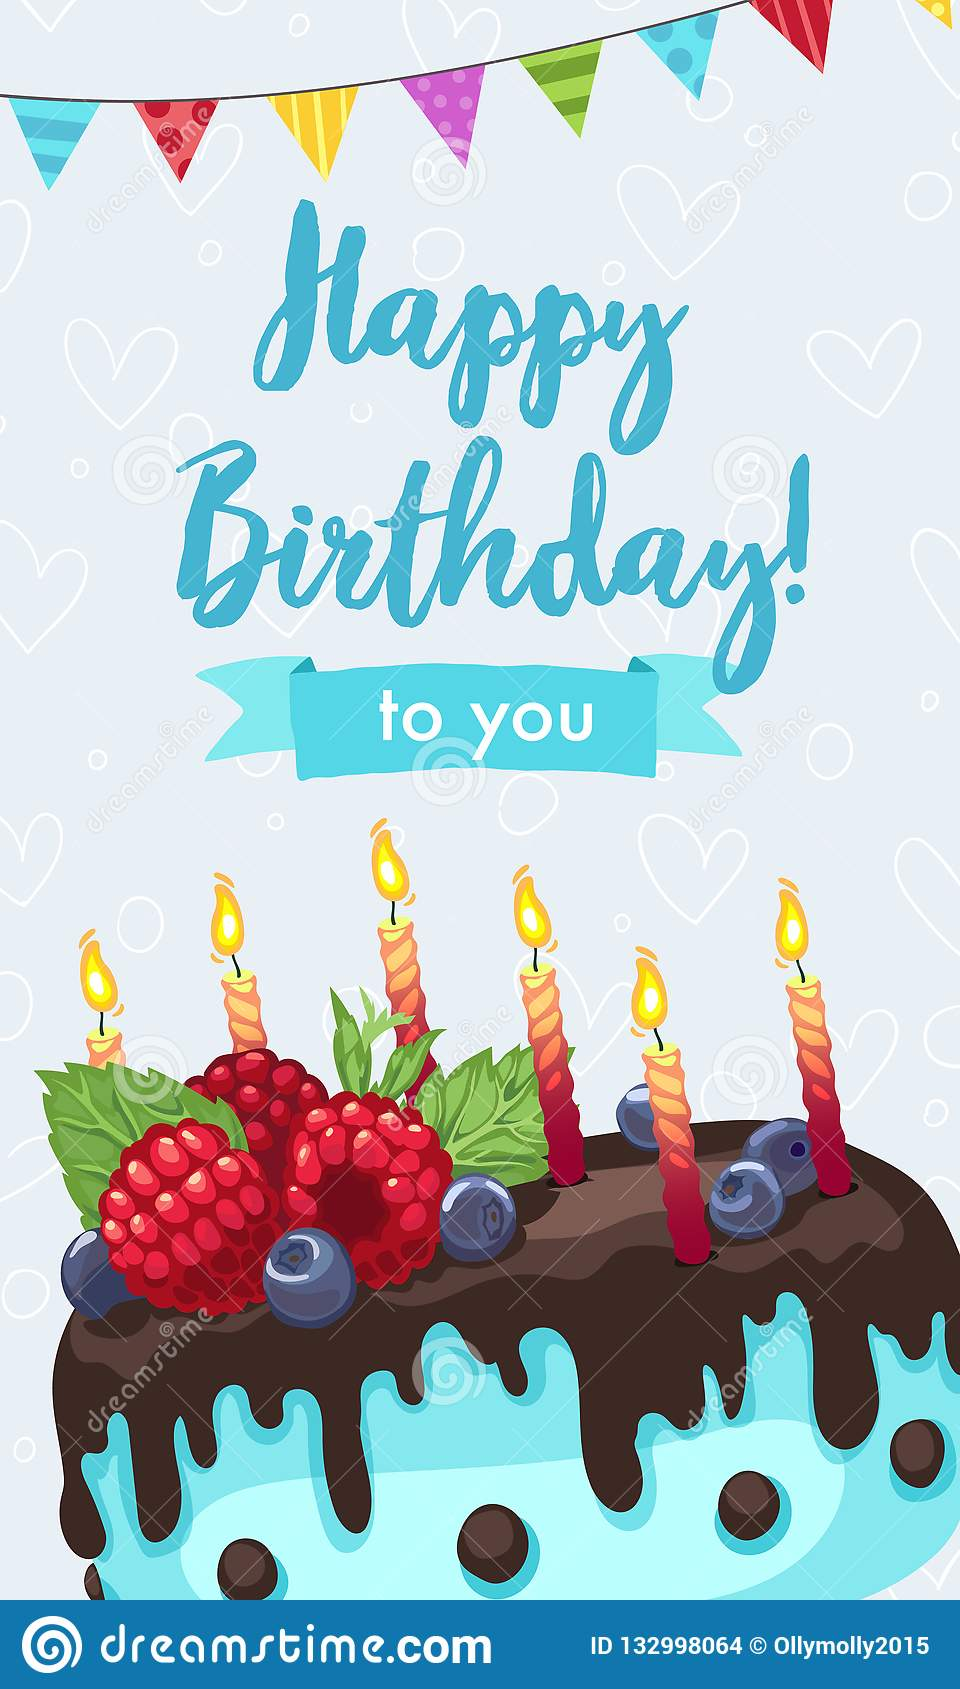 Bright Birthday Cakes Vector Illustration Gift Card Design Template Happy Greeting In Vertical Format